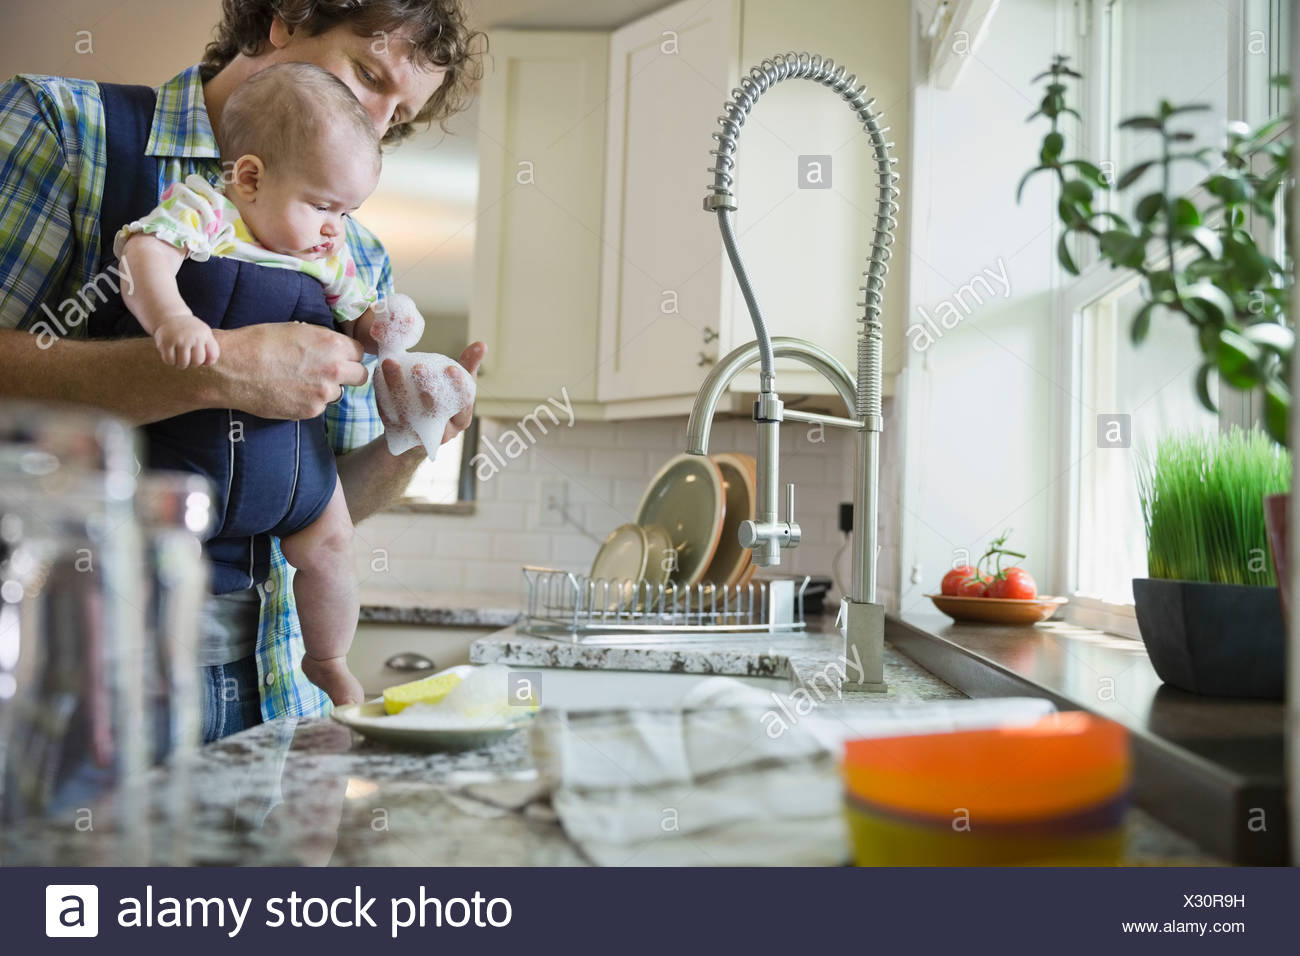 Father holding baby girl while washing dishes - Stock Image